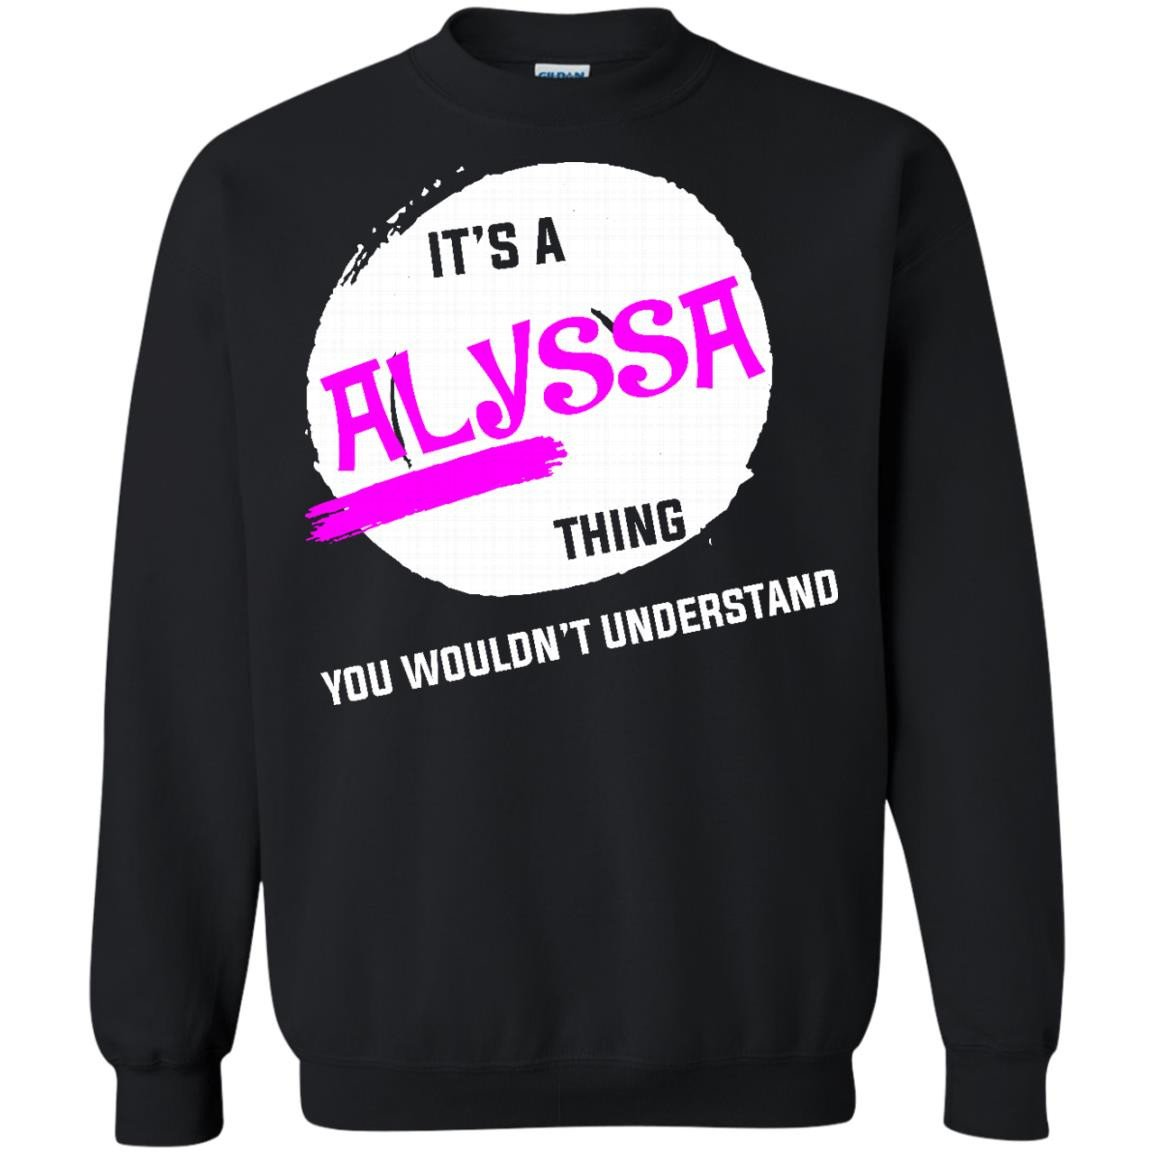 Alyssa Shirts It's A Alyssa thing T-shirts Hoodies Sweatshirts